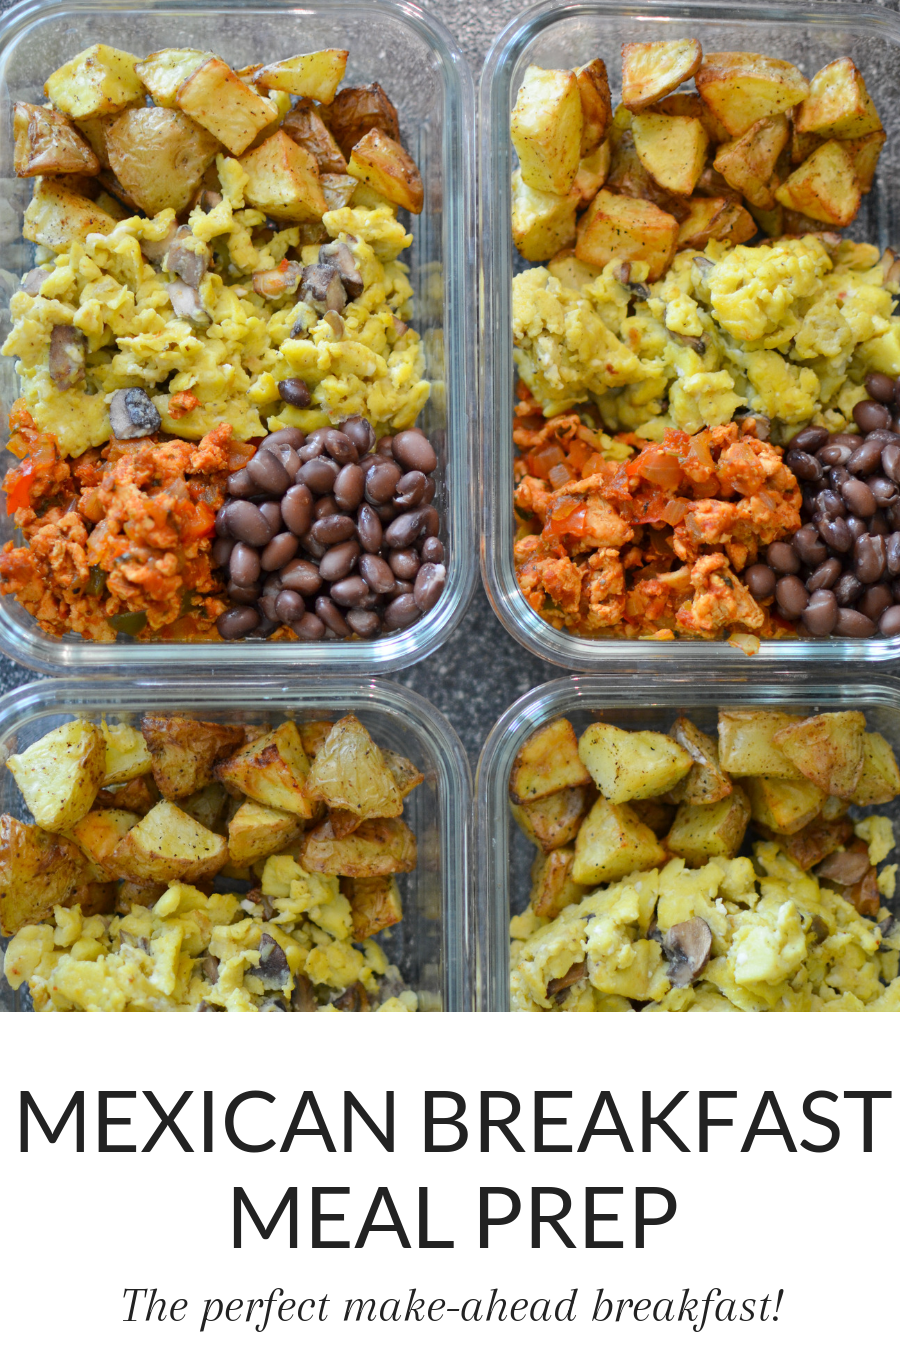 Need an easy make ahead breakfast? This one is for you! Full of protein, veggies, and fiber, this is #WW Friendly and can easily be adapted for #Paleo and #Whole30! #weightwatchers #mealprep #breakfast